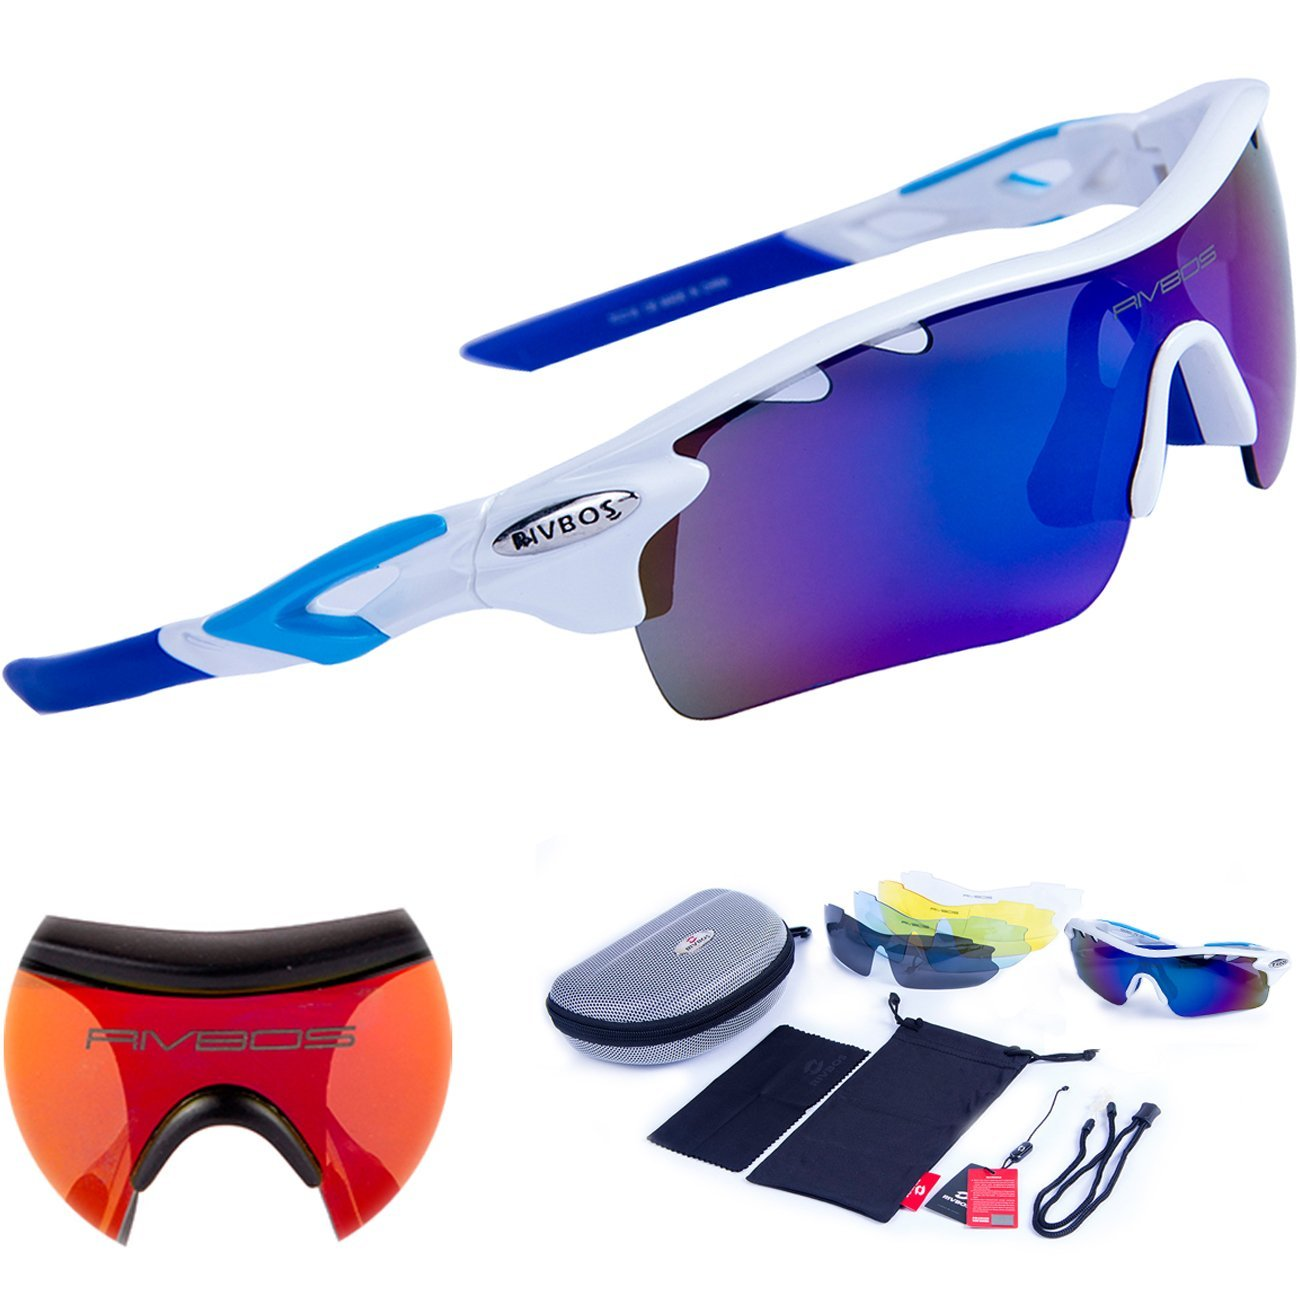 Fluorescent Sports Sunglasses with interchangeable Lenses